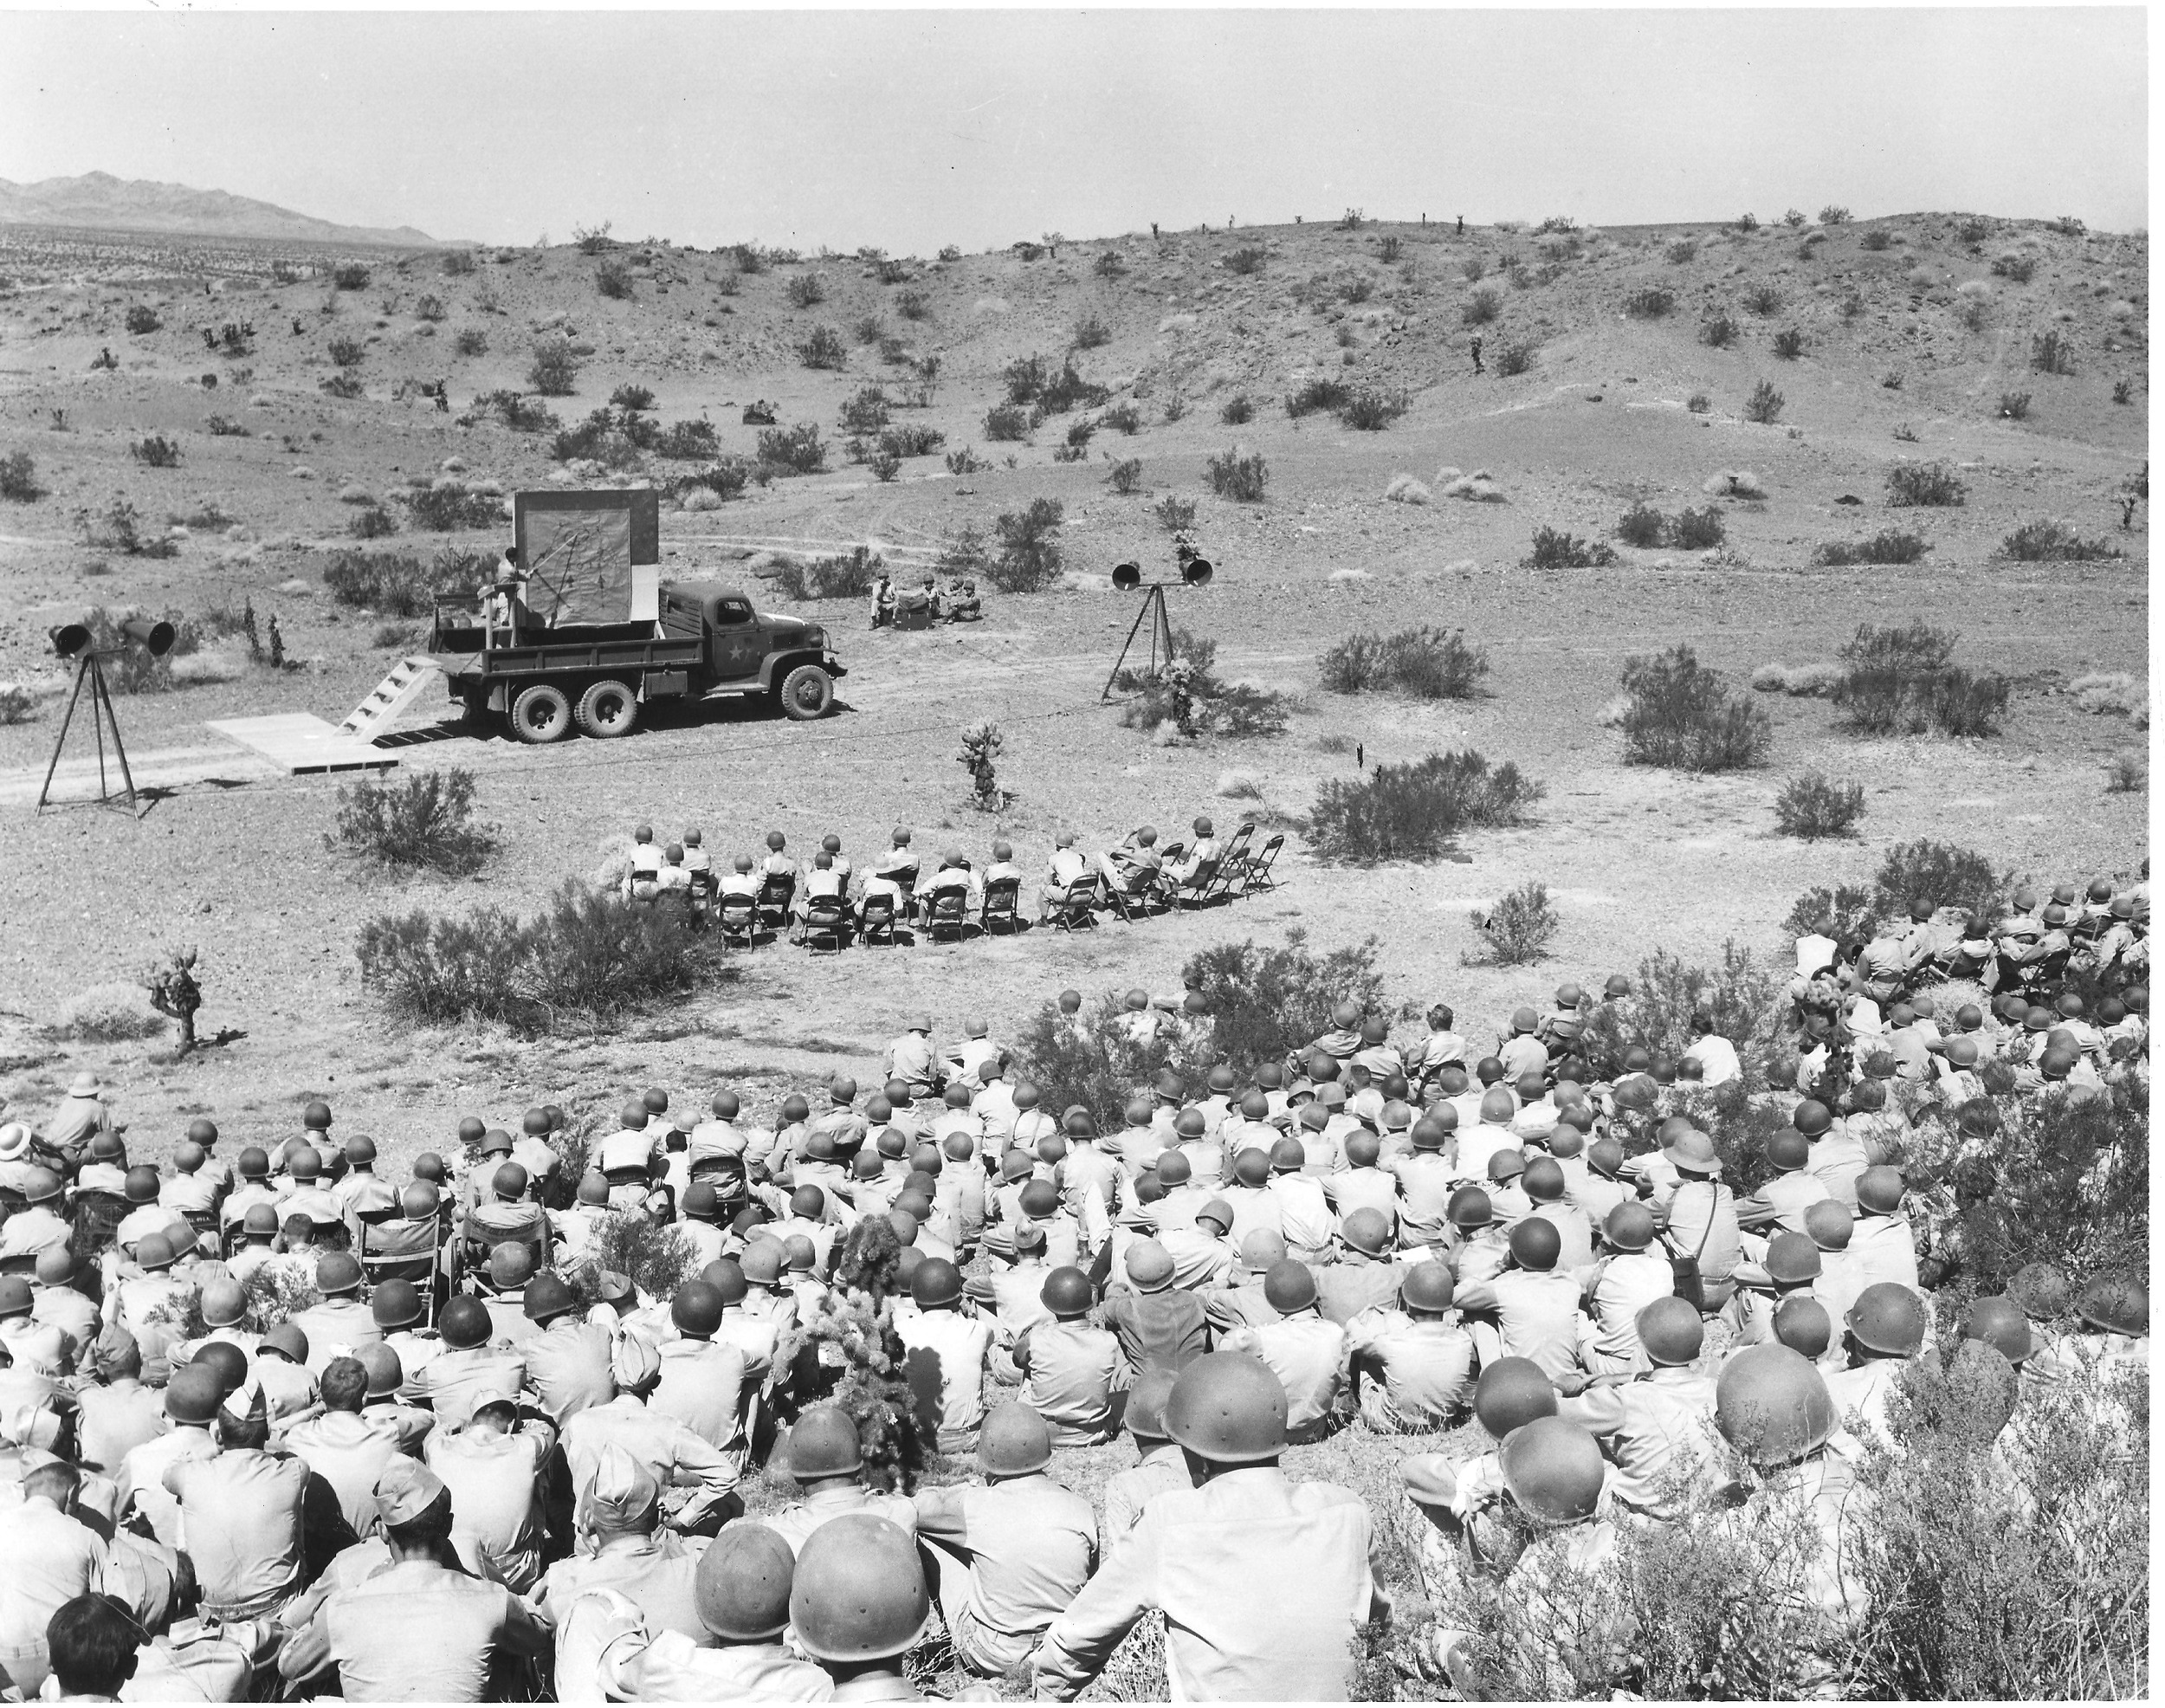 Officers listen to reviews of a maneuver held five miles from Needles, California at the Desert Training Center in September 1942. U.S. Army photograph, courtesy of the General Patton Memorial Museum.